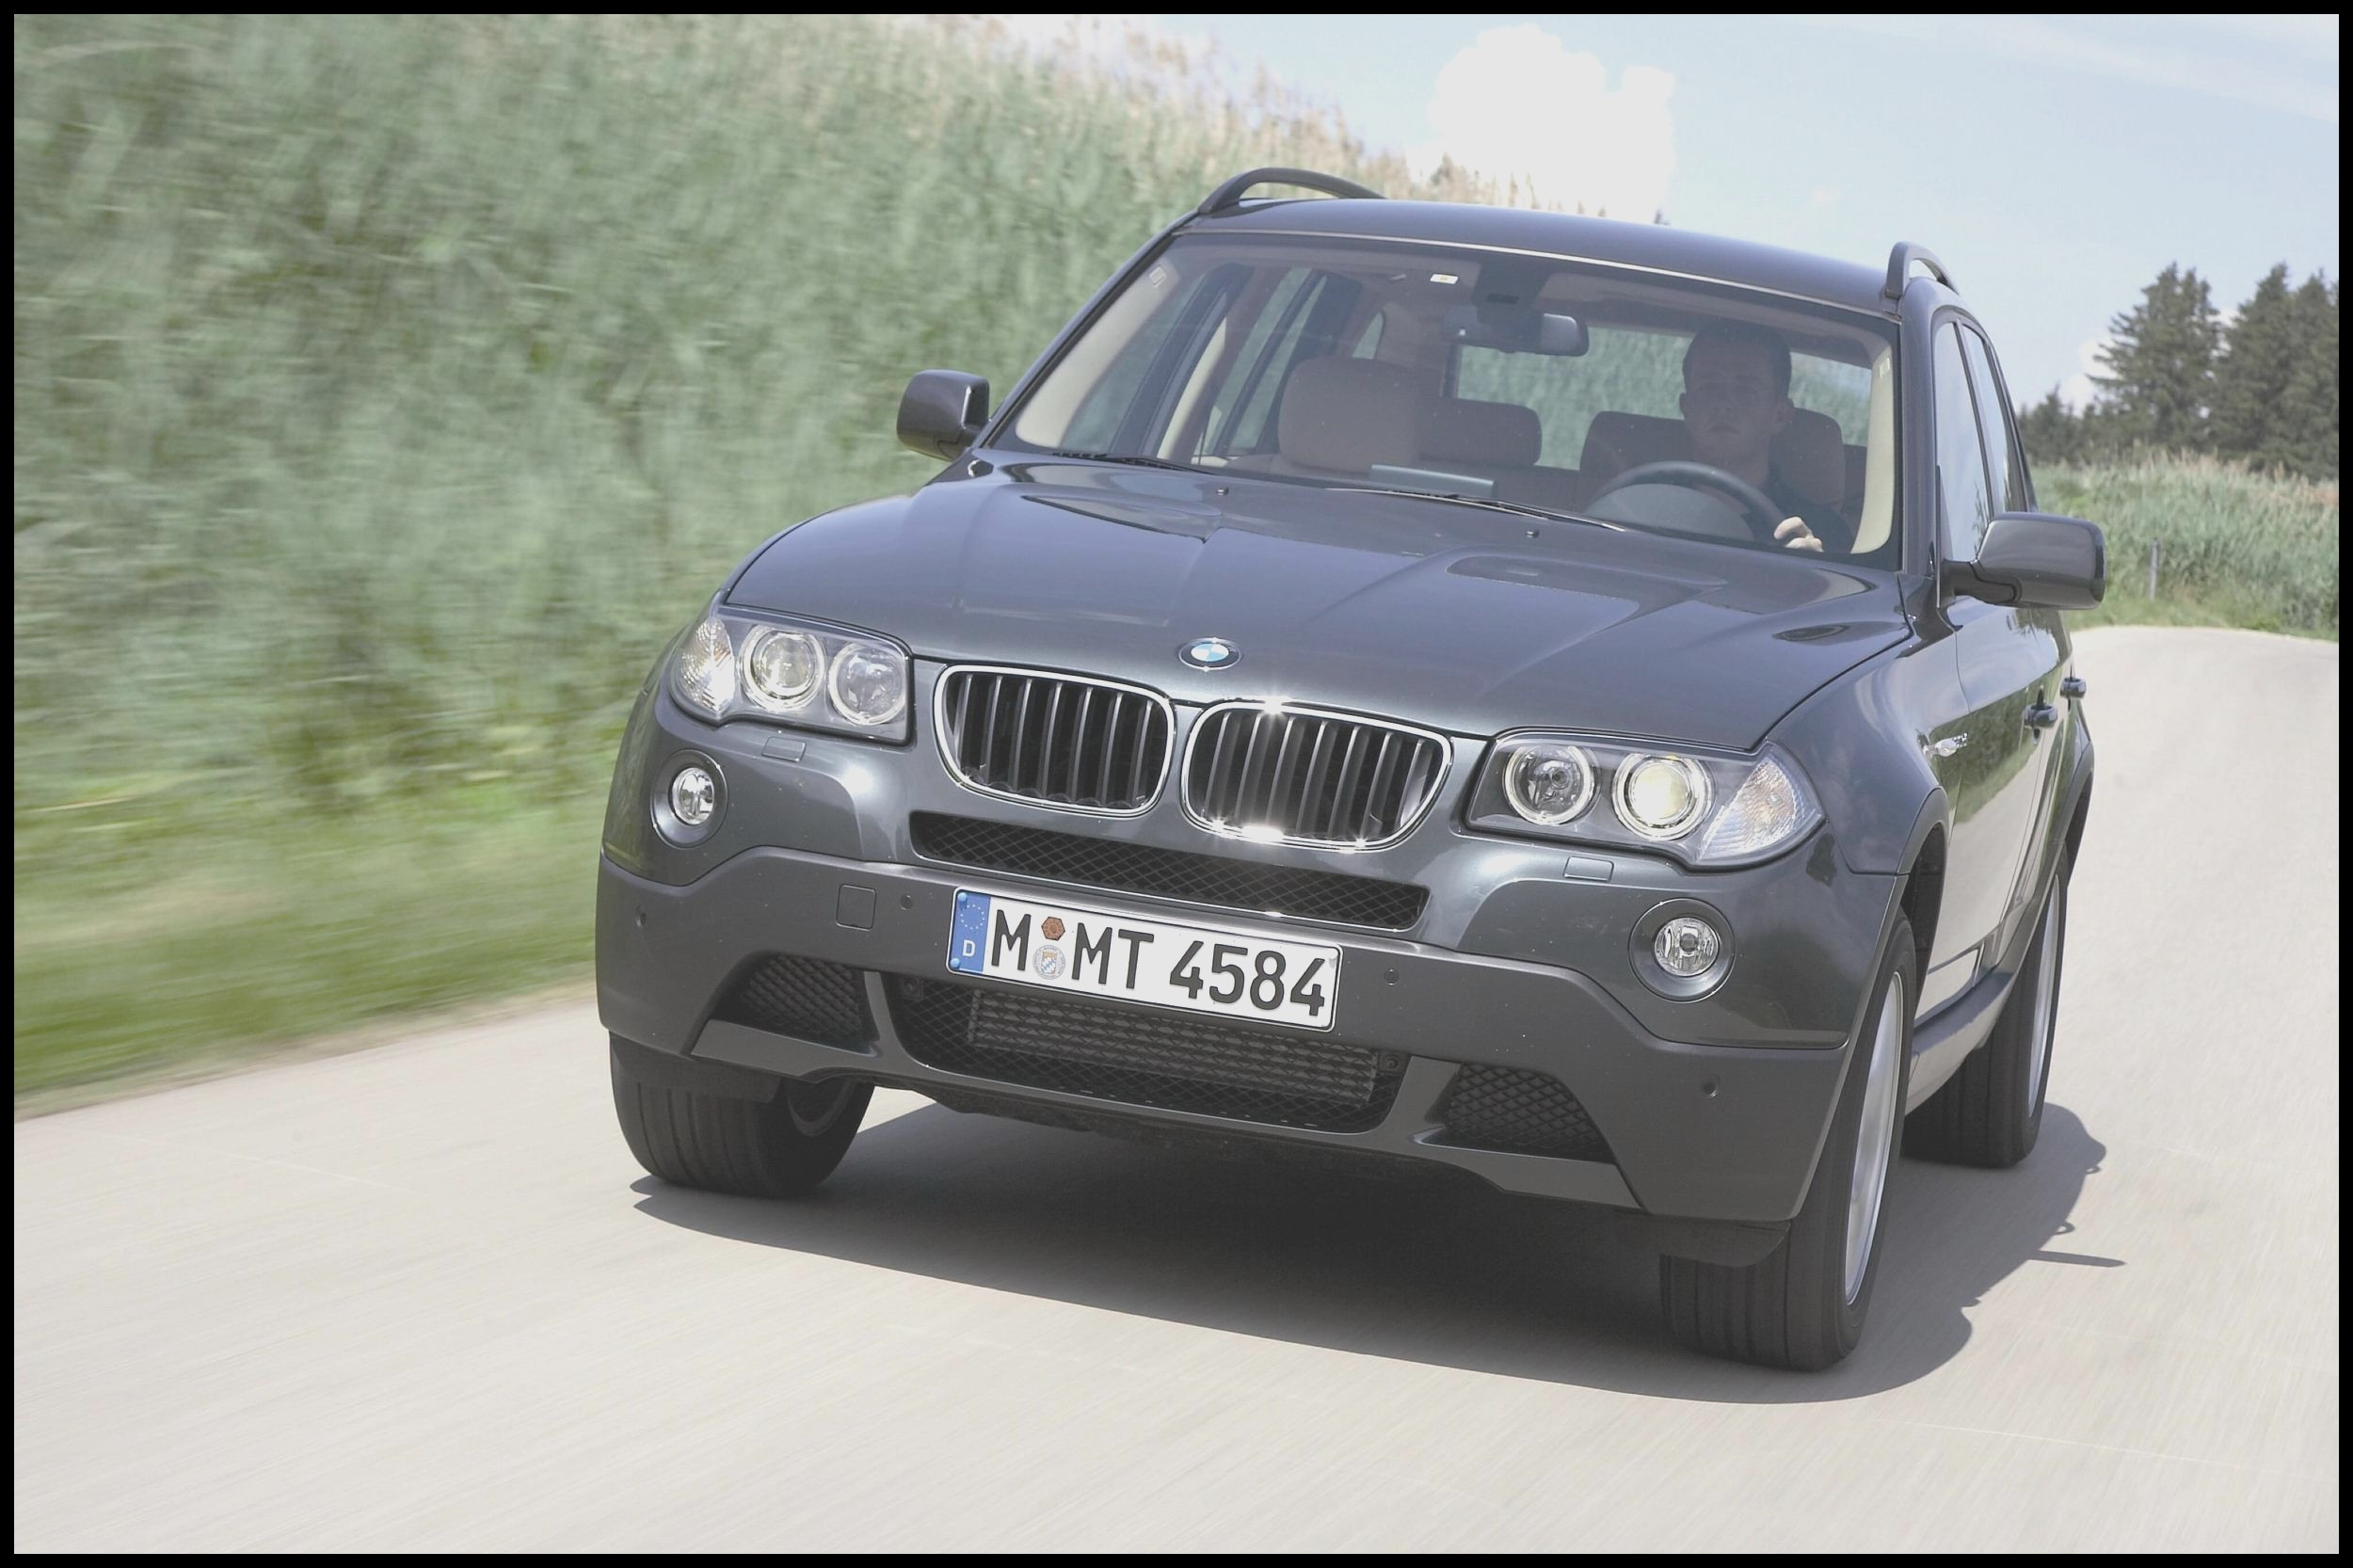 Best 2012 Used Cars Lovely Bmw for Sale Beautiful Bmw M1 2008 2012 Bmw M1 for